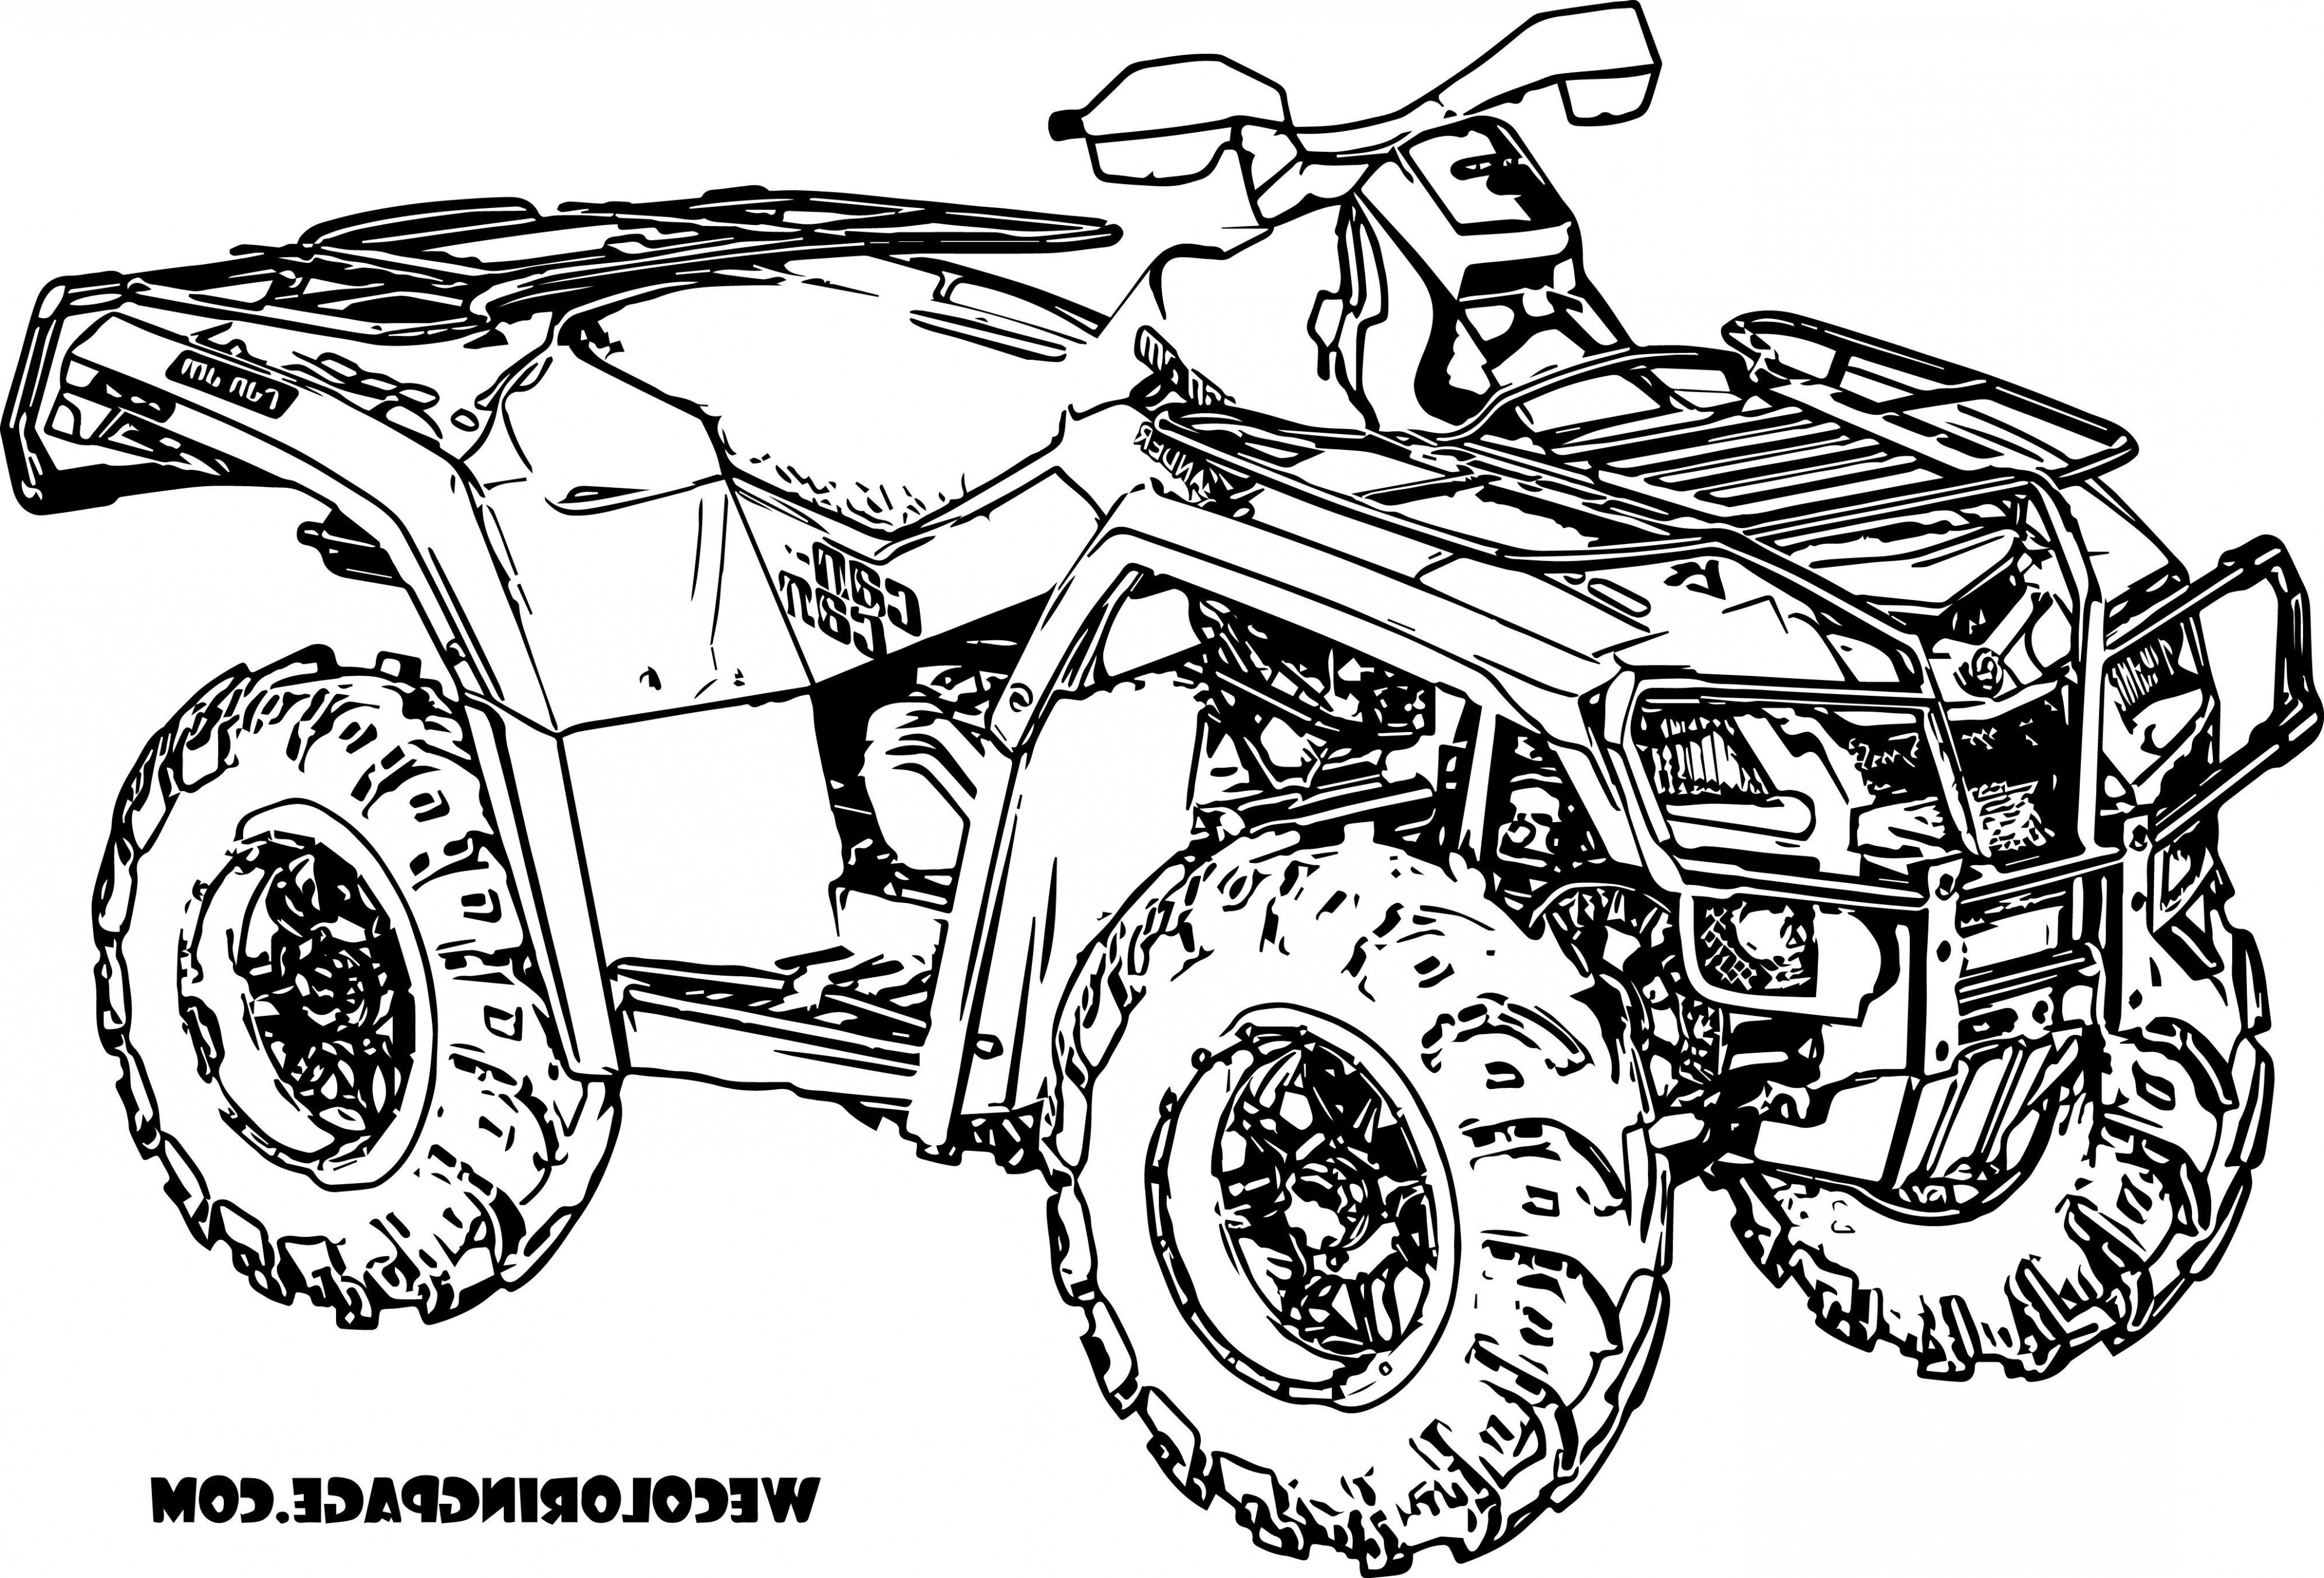 The Latest Trend In Quad Coloring Pages Coloring Truck Coloring Pages Cars Coloring Pages Coloring Pages To Print